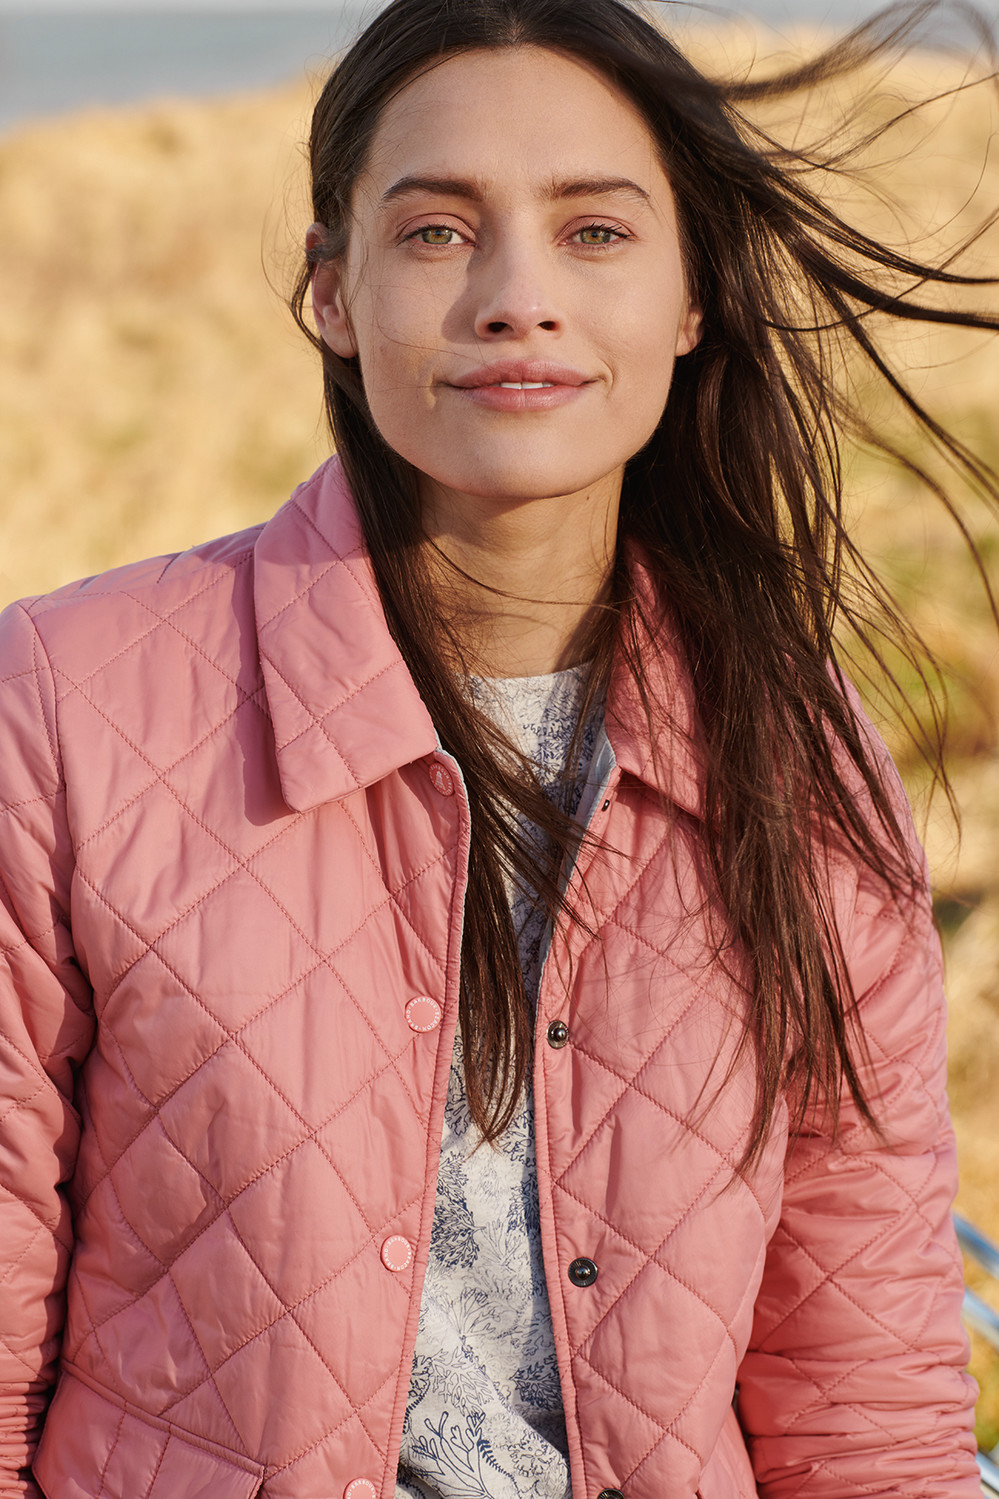 SS19_Barbour Lifestyle Coastal_Overwash Quilt_LQU1025PI51_Dalgetty Overlayer_LOL0129WH71_300dpi_CMYK_15cm _12_.jpg